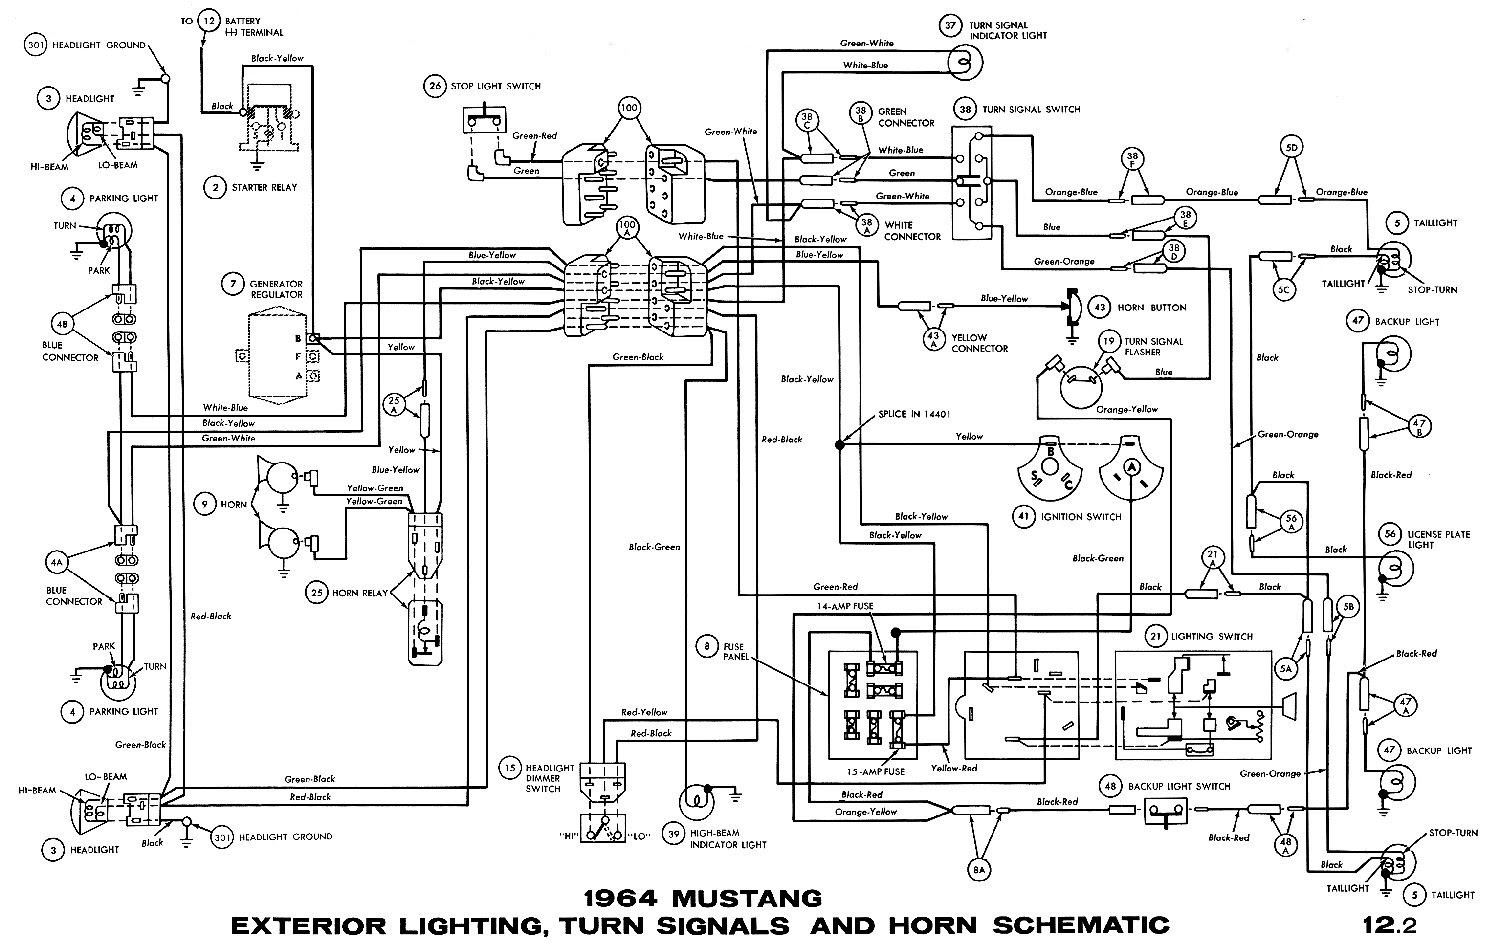 69 Mustang Dash Wiring Diagram Free Download Wiring Diagram Report A Report A Maceratadoc It